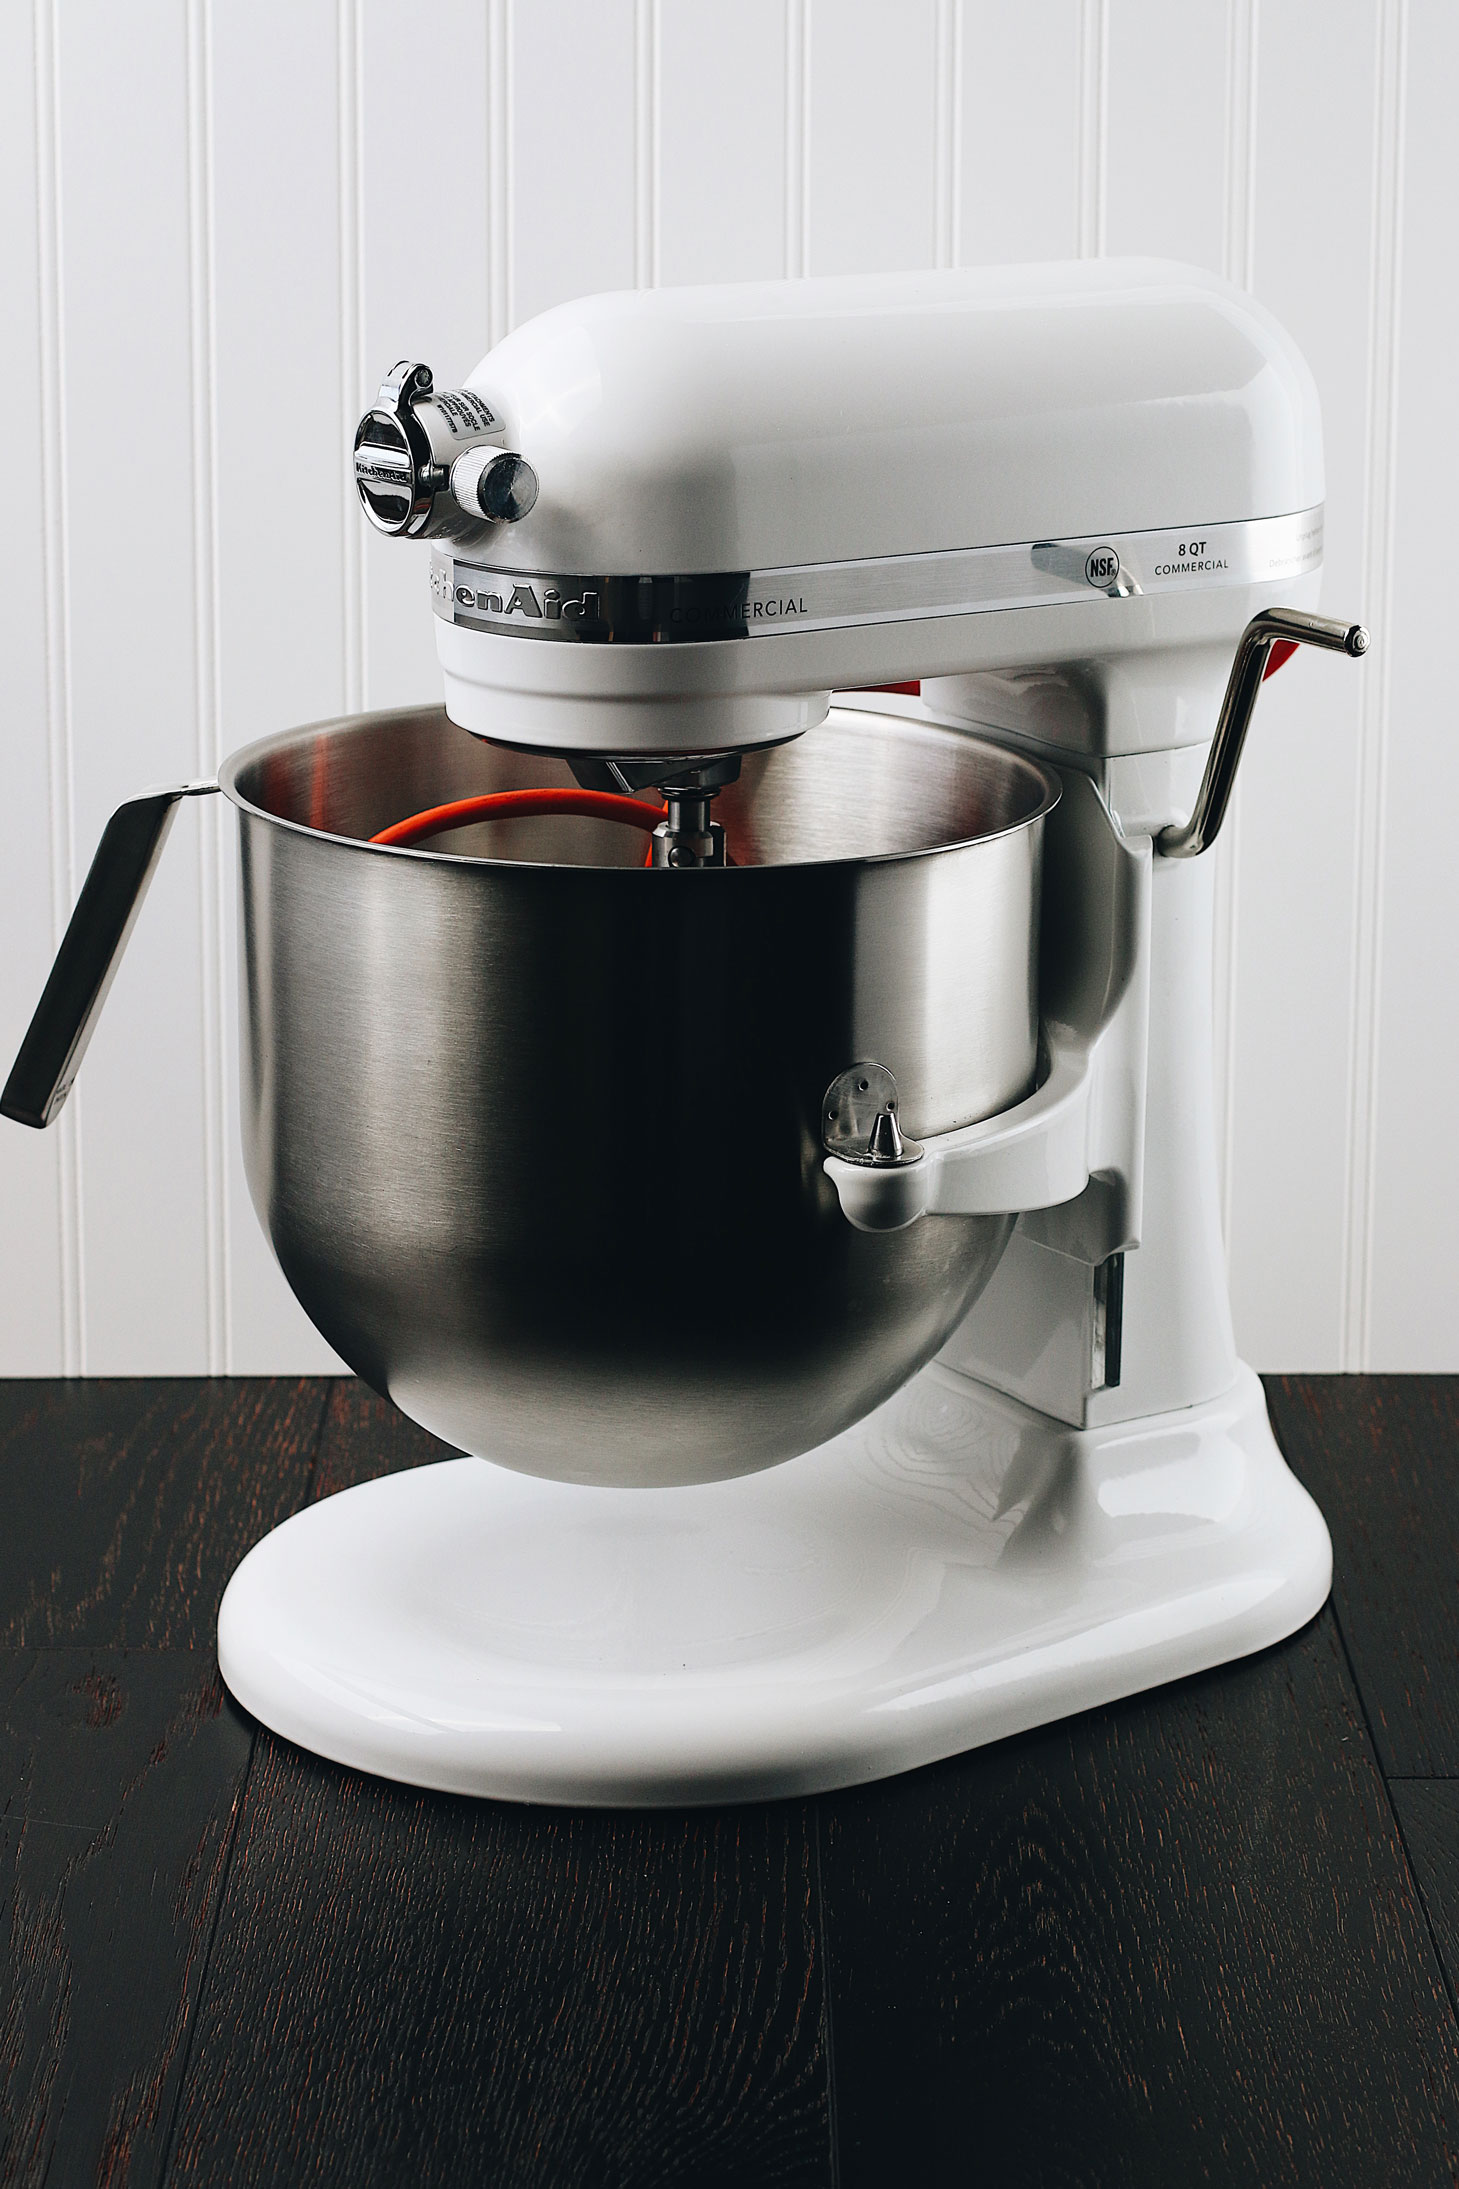 herbakinglab-new-kitchen-aid-commercial-mixer-white